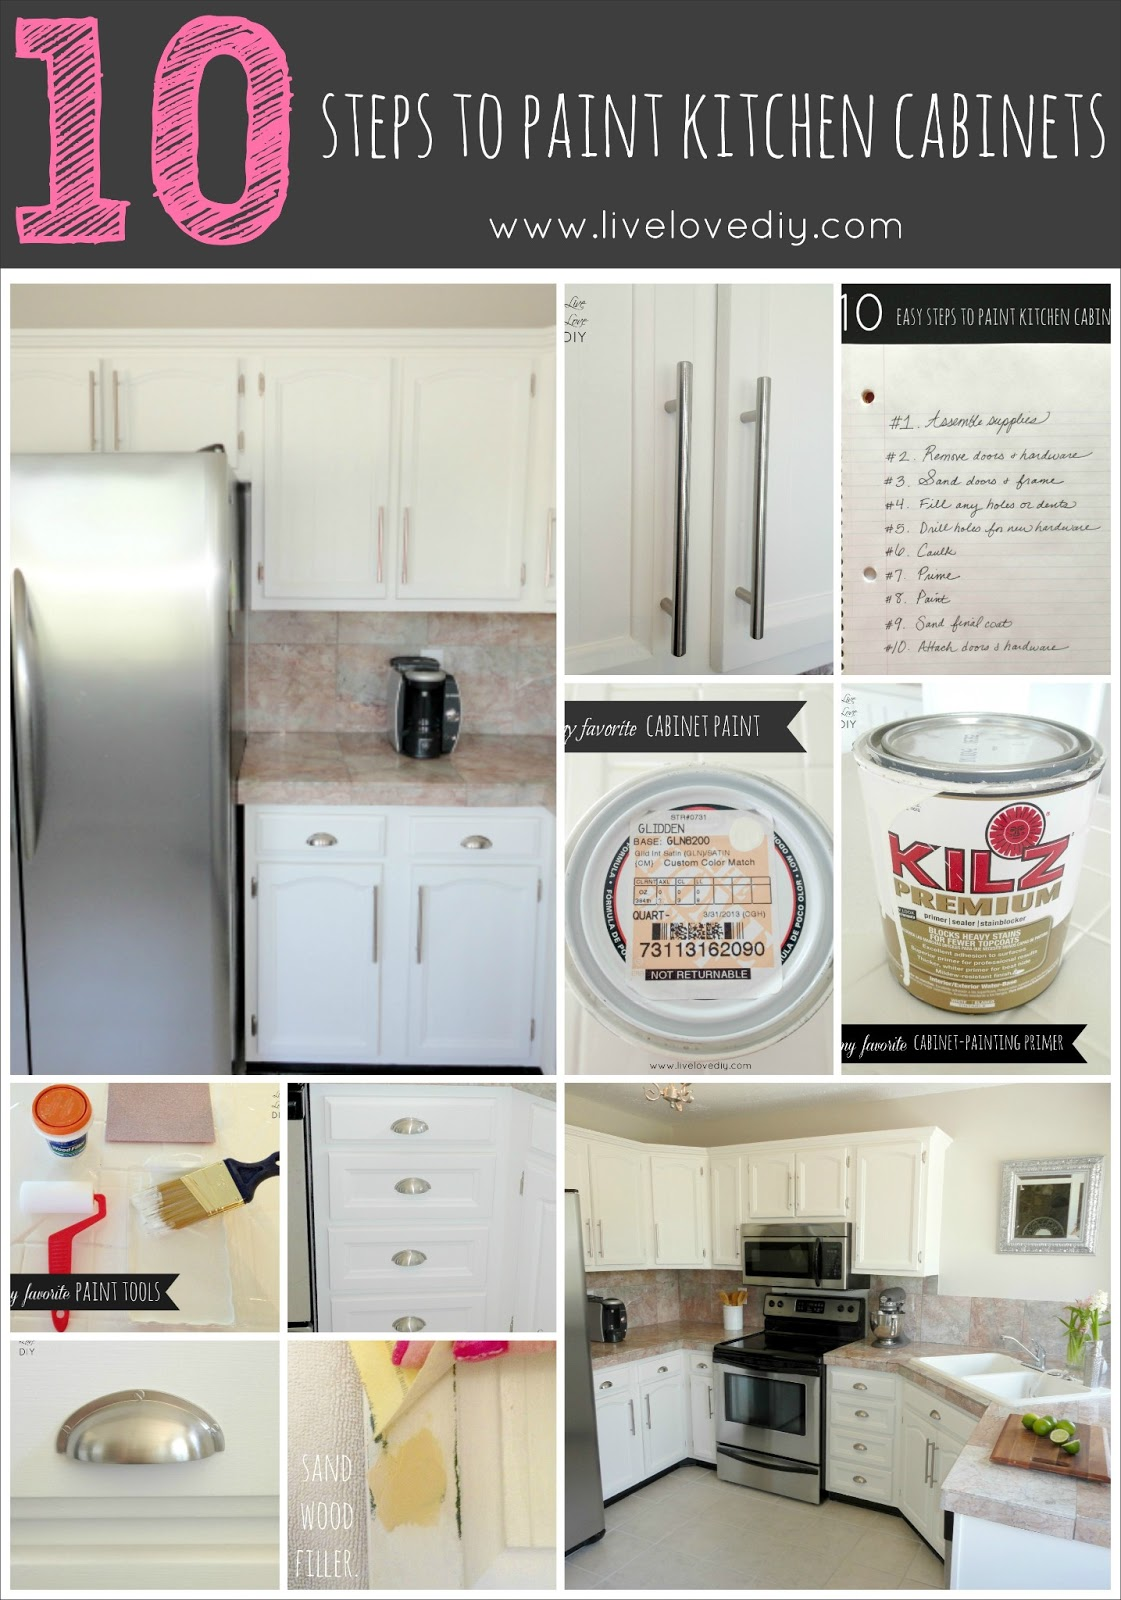 How To Paint Kitchen Cabinets in 10 Easy Steps & LiveLoveDIY: How To Paint Kitchen Cabinets in 10 Easy Steps